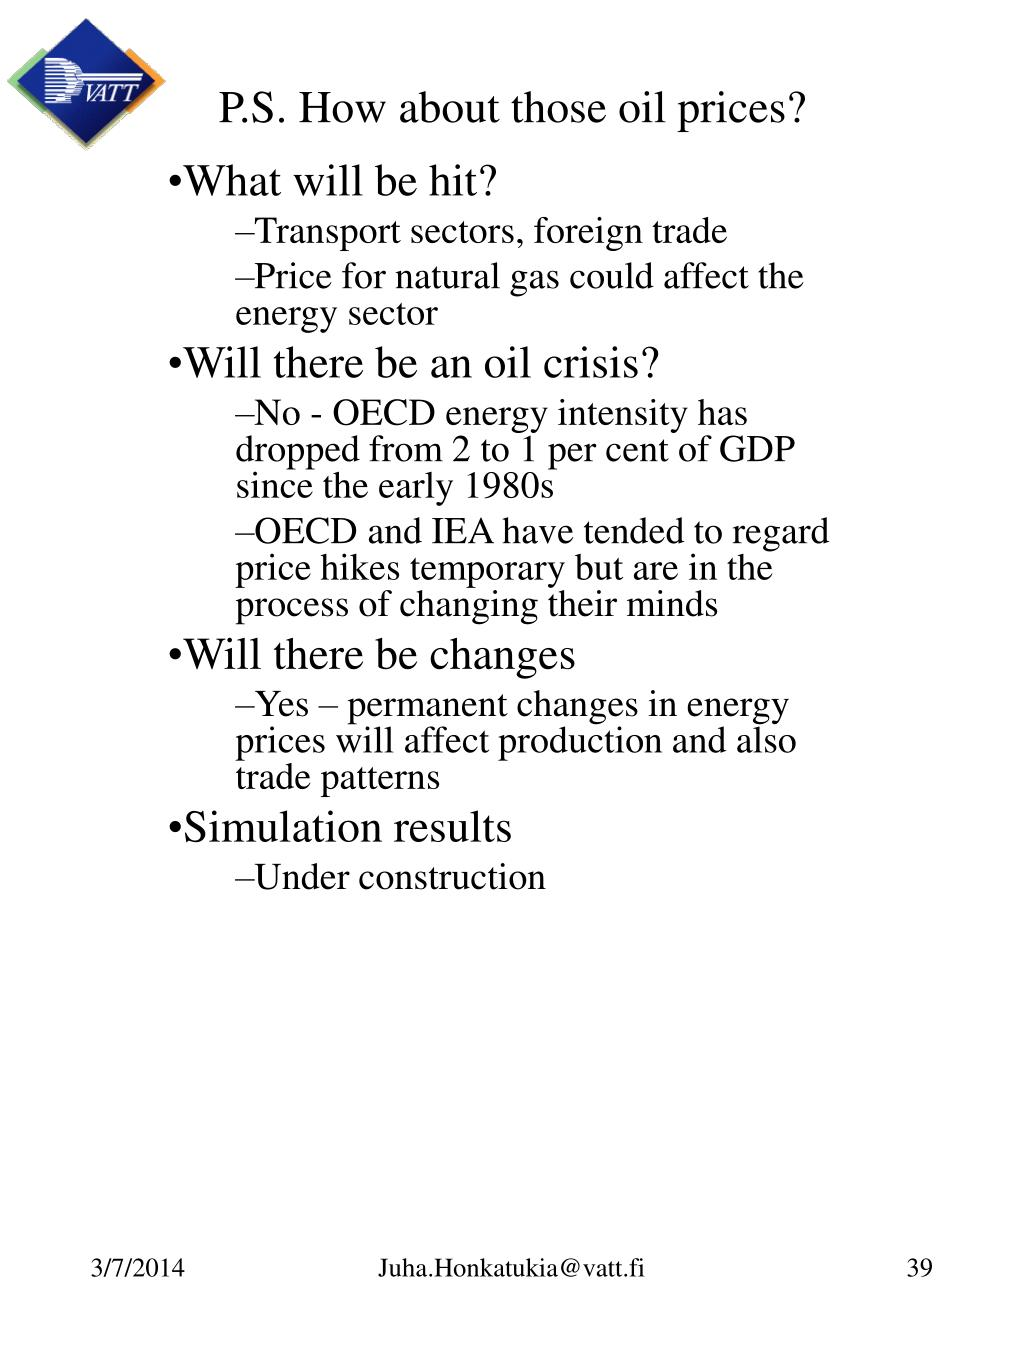 P.S. How about those oil prices?